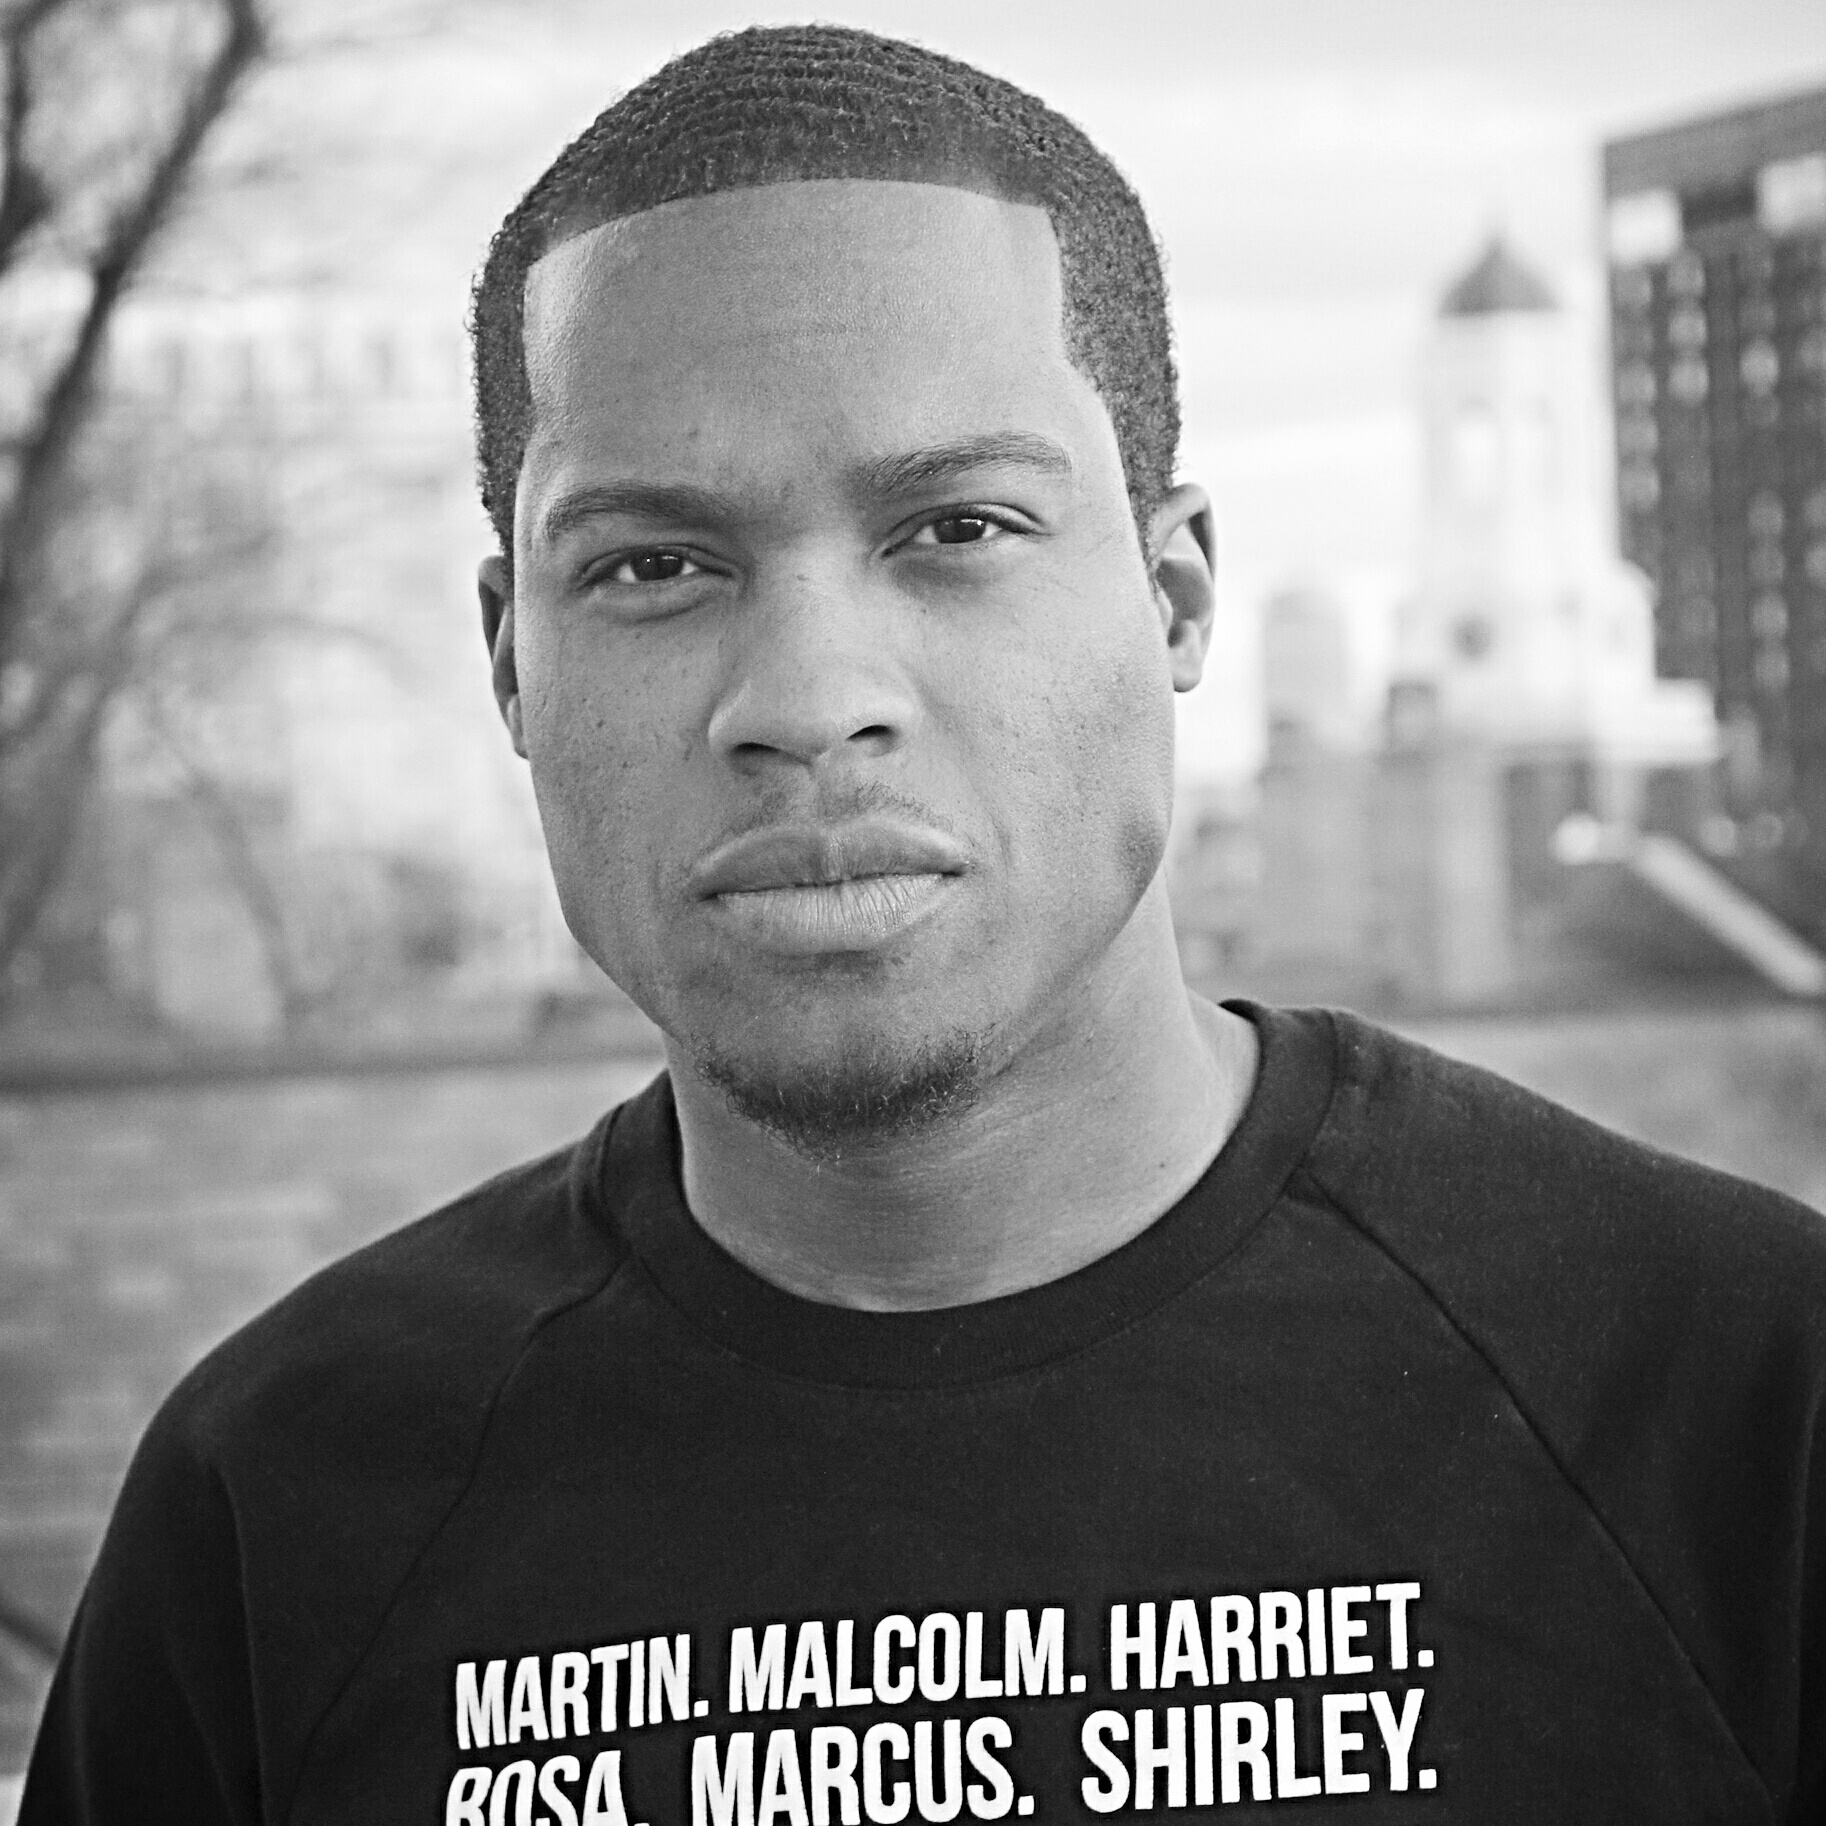 """Renaldo Pearson   Renaldo was born and raised in """"The DMV"""" (Washington, DC and Fort Washington, MD) and serves as Co-Mission Director of Democracy Spring. In his speech at the inaugural Unrig the System Summit in 2018, the 50th anniversary year of Dr. King's assassination, Pearson resurrected Dr. King's undelivered sermon, """"Why America May Go to Hell,"""" and boldly juxtaposed it to his new framework for the democracy movement, """"The 7 Deadly Sins of American Democracy."""" Global think tank and government corruption watchdog Transparency International has since credited that speech and framework for becoming """"a touchstone for thousands of anti-corruption and pro-democracy activists around the country.""""  Three years after our historic April 2016 mobilizing launch where we demanded that Congress #FixDemocracyFirst, he stood behind congressional leadership (at the invitation of the Speaker of the House) for the pre-vote press conference and watched from the House Gallery during their vote to pass H.R.1, The For the People Act — a historic milestone (advancing virtually all of the pro-democracy countermeasures to """"The 7 Deadly Sins of American Democracy"""") which might not have been possible without the thousands that mobilized for and since Democracy Spring.  Pearson is a 2011 graduate of Morehouse College and former Harvard University administrator and Social Engineer-in-Residence. He co-founded the Boston Democracy Circle (a heart and brain trust for local champions of democracy) with Frances Moore Lappé, helped to inspire the new support ecosystem for """"Democracy Entrepreneurs"""" as a founding consultant, and now serves on the boards of Voter Choice Massachusetts (advancing ranked-choice voting) and Free Speech TV. He is featured in award-winning filmmaker Josh Tickell's new book and film,  The Revolution Generation: How Millennials Can Save America and the World (Before It's Too Late)."""